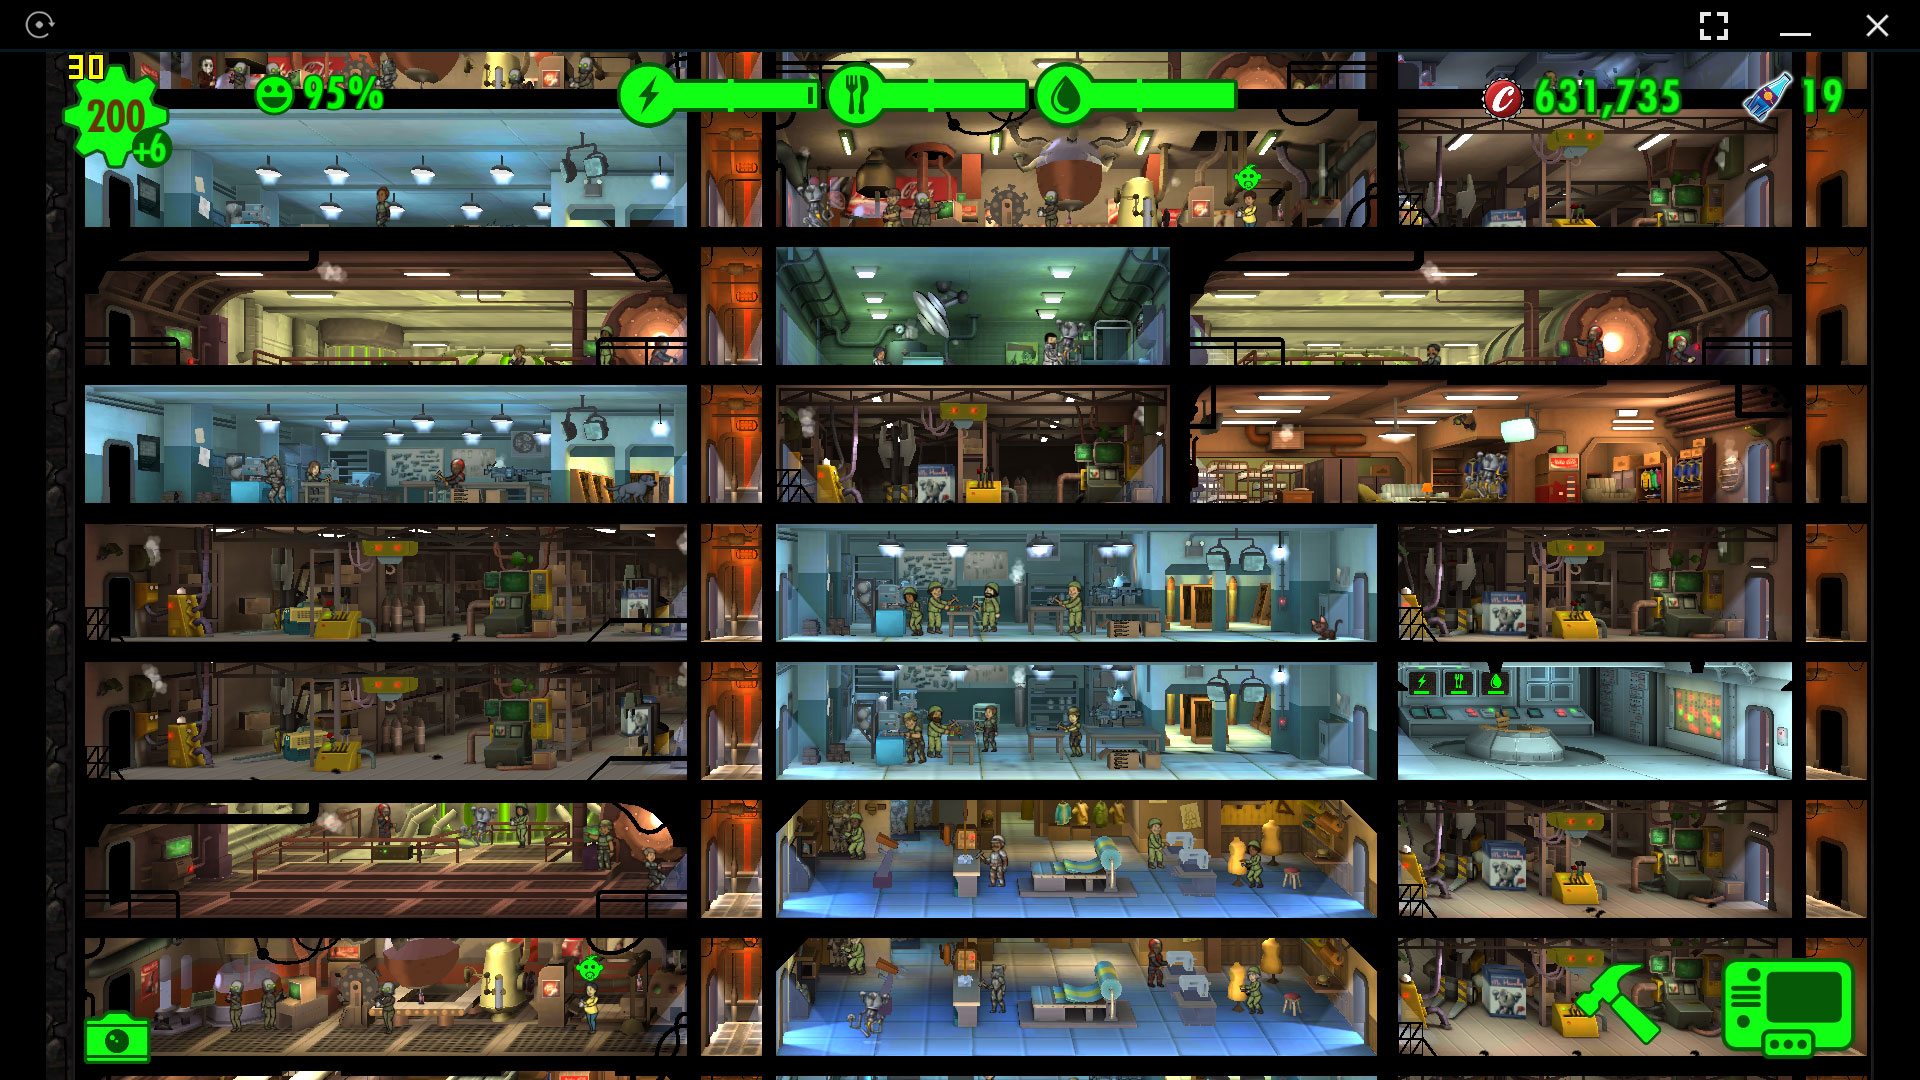 Fallout Shelter out now on Windows 10 as 'Play Anywhere' game | PC Gamer